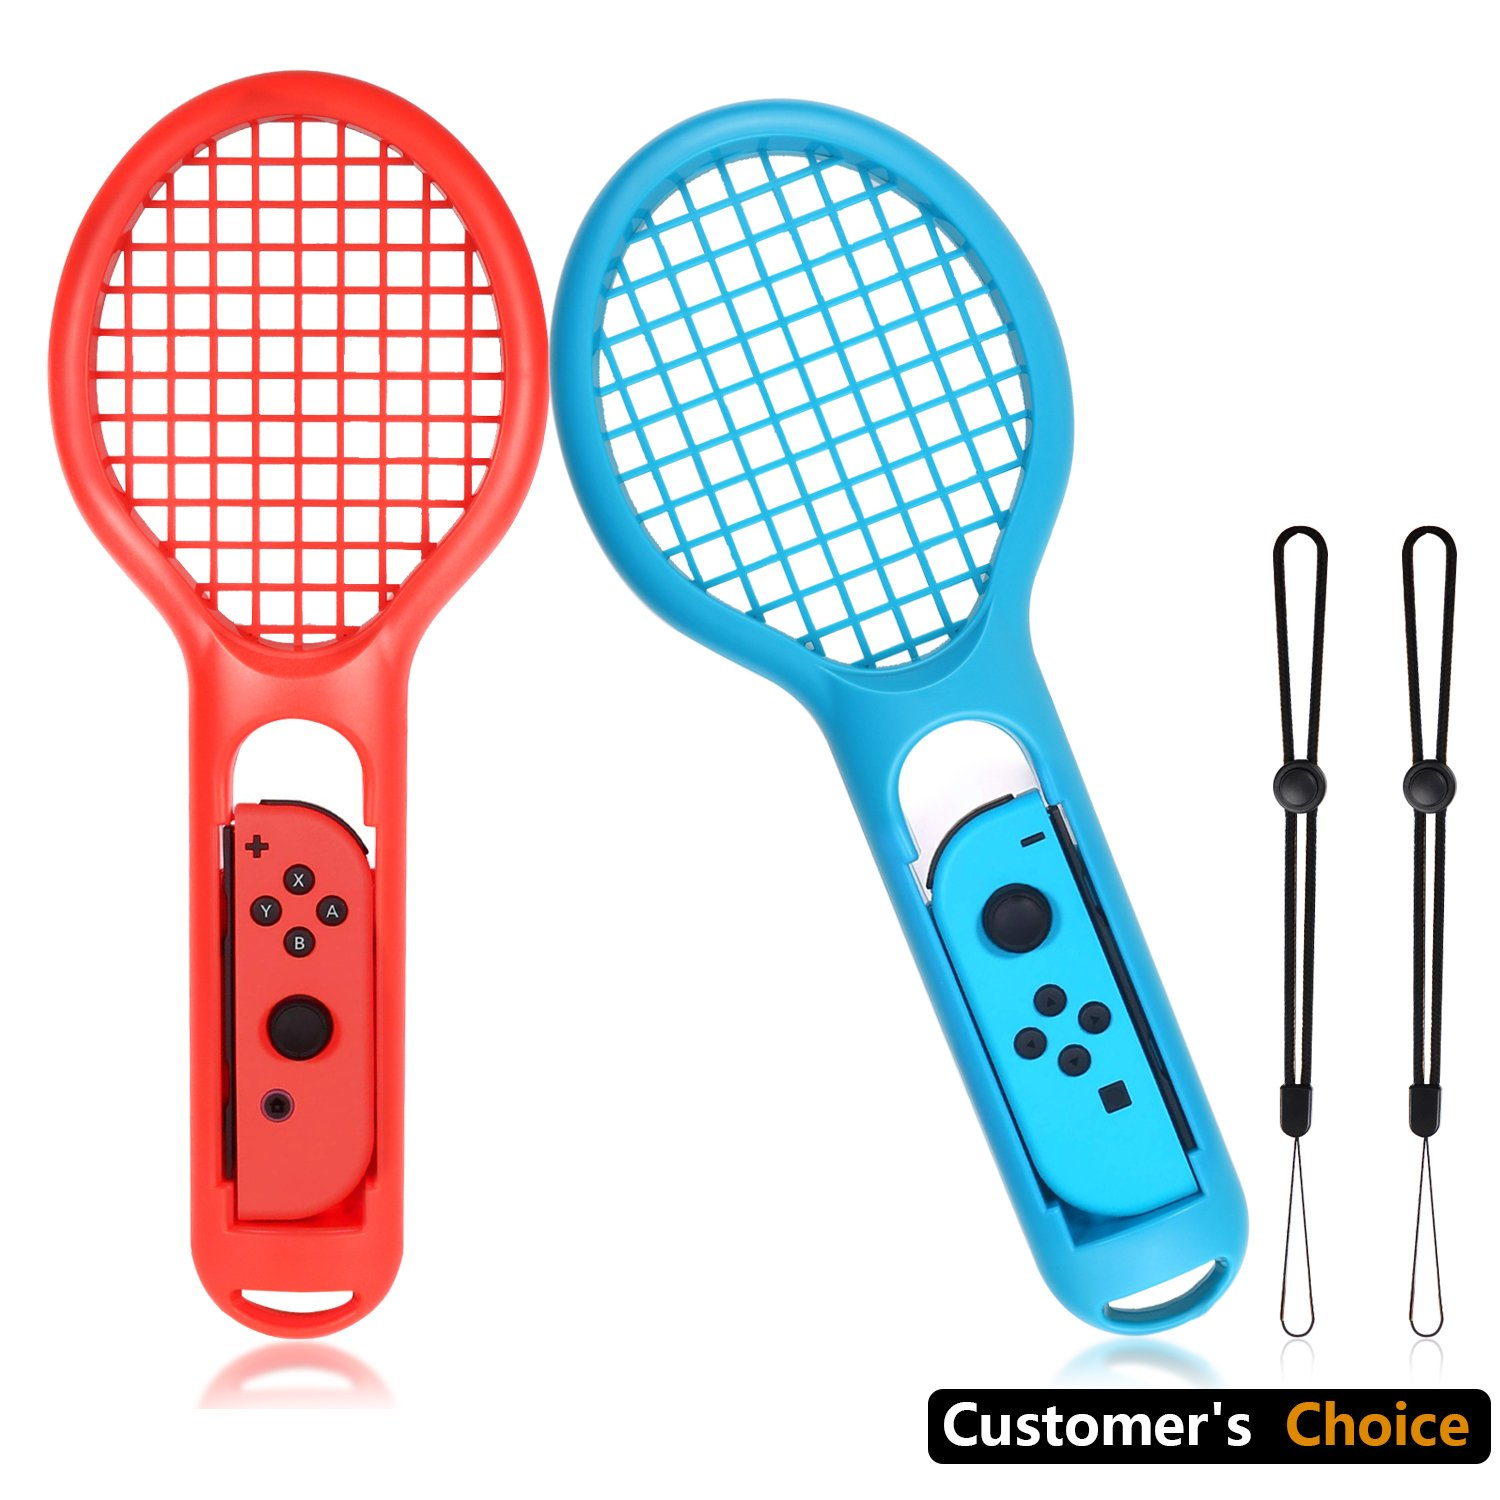 Tennis Racket for Nintendo Switch Switch Nintendo Switch Game Mario Tennis Aces for Joy-Con Controller Twin Pack Tennis Racket (1X Blue & 1X Red)